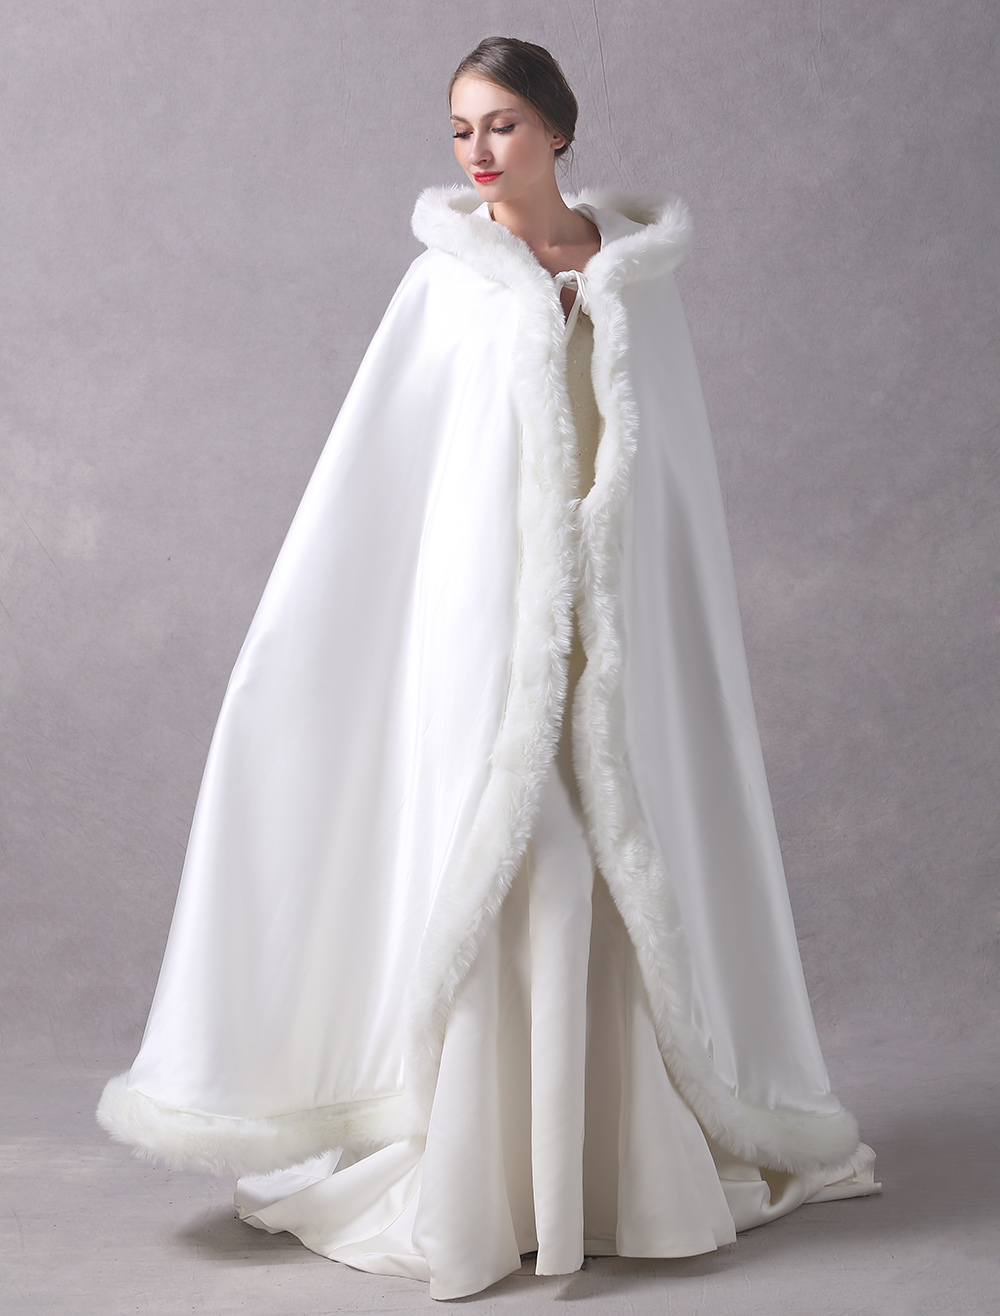 Satin Wedding Jacket Long Bridal Cape Cloak Fur Trim Ivory Hooded Ivory Winter Wrap Coat